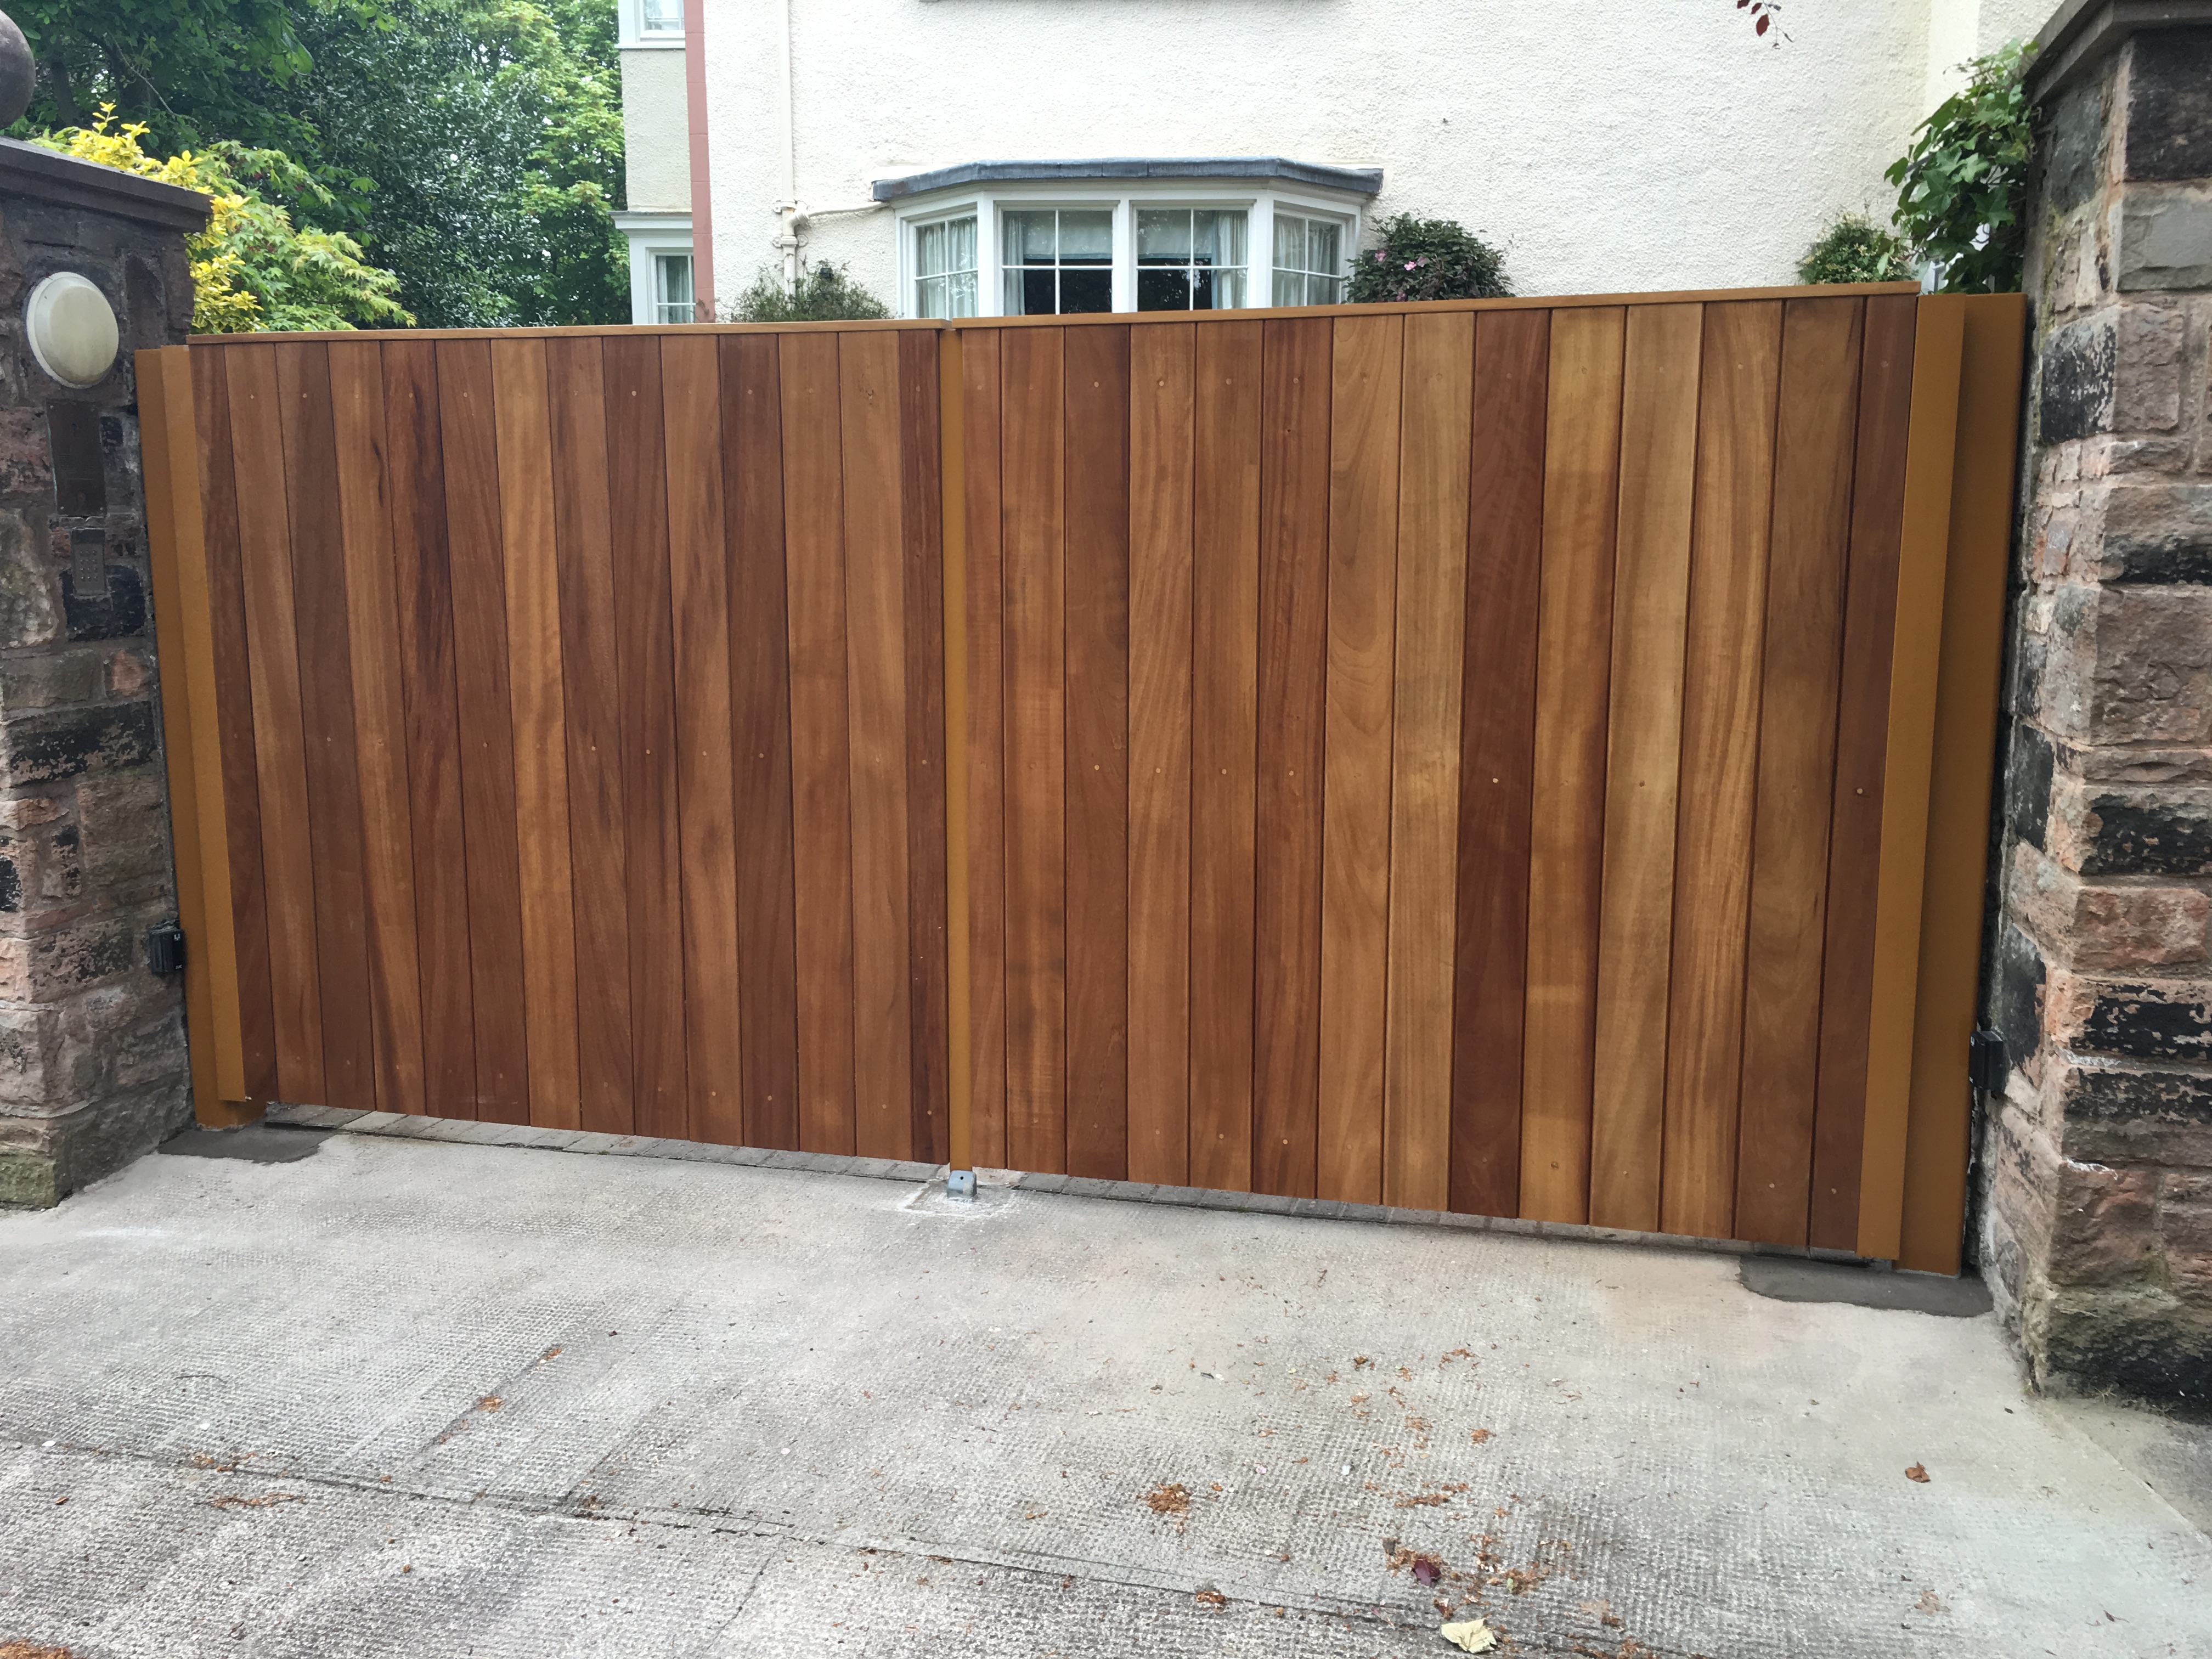 Eskbank Style Double Gates - Iroko Faced